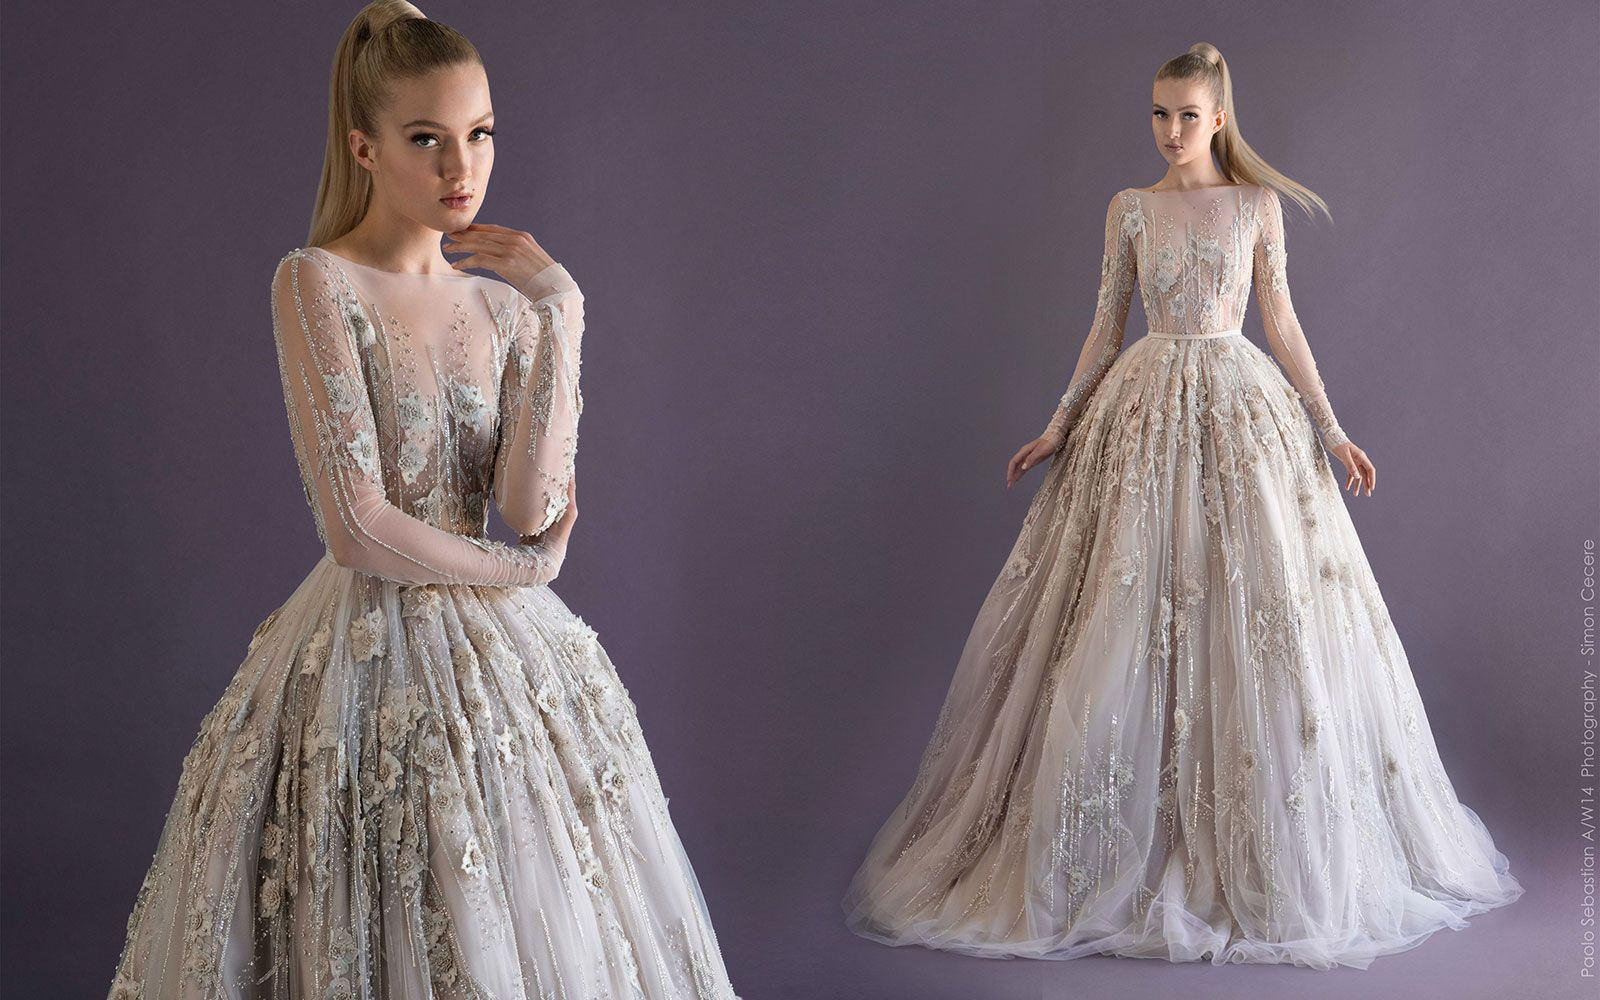 2014 AW Couture | Paolo Sebastian | Couture Goals | Pinterest ...